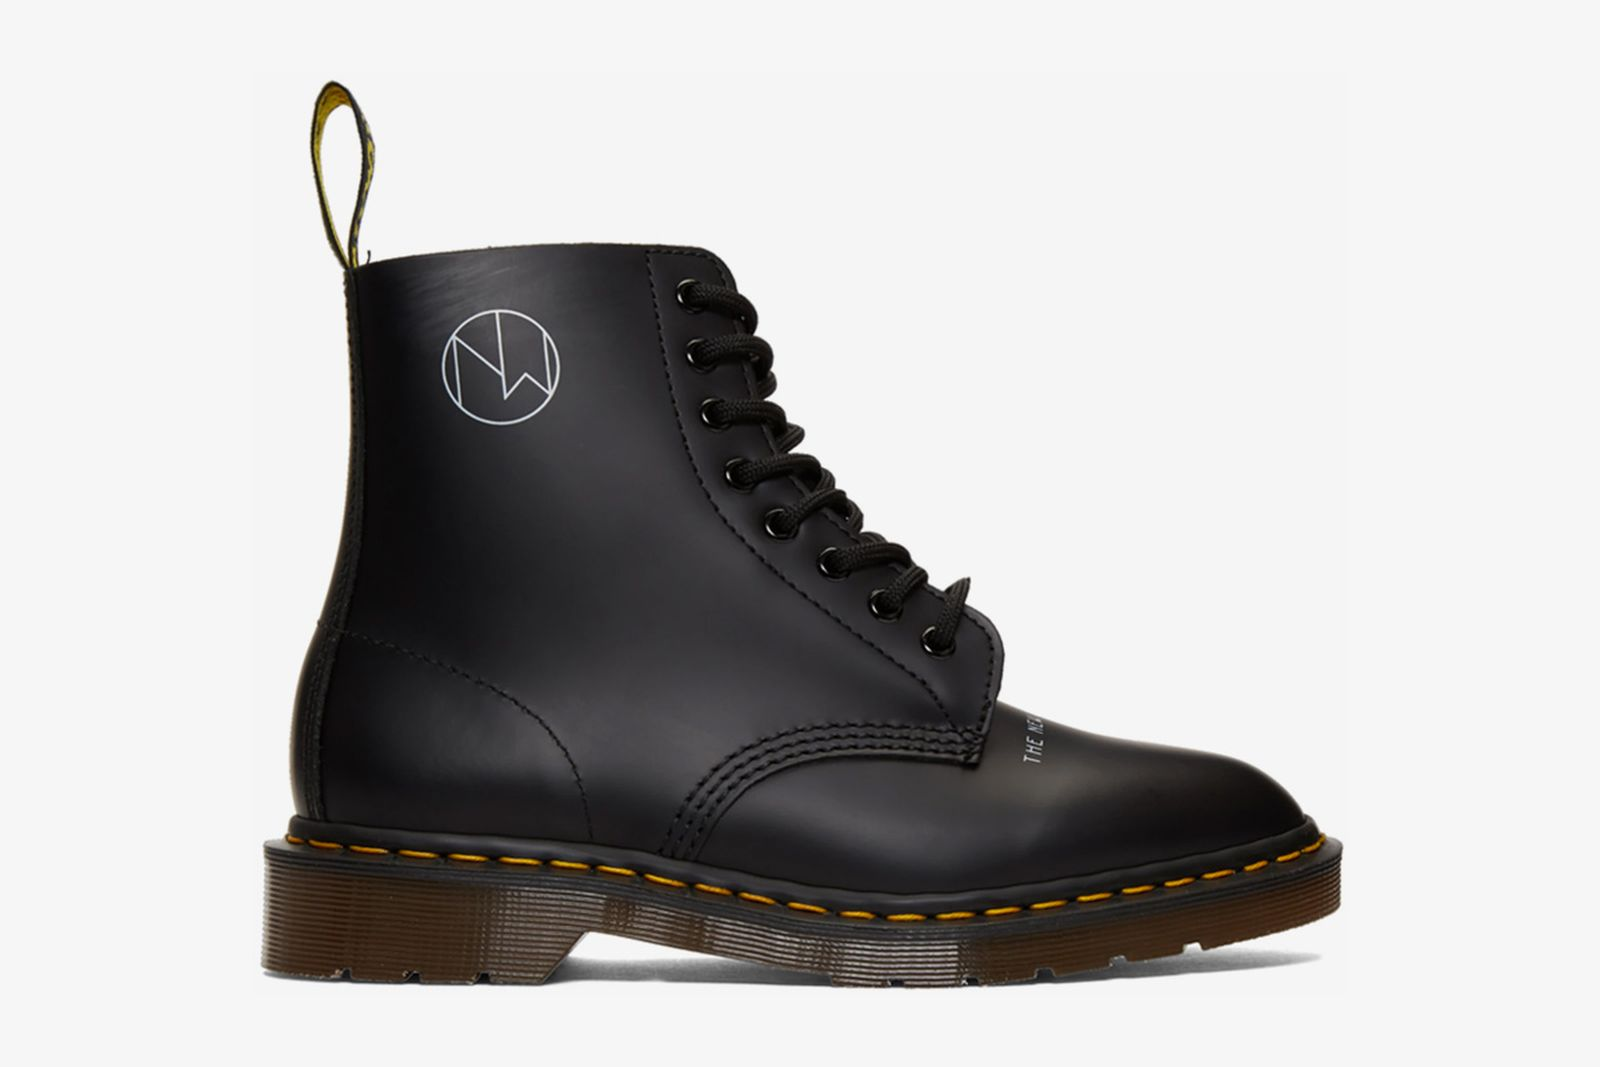 undercover dr martens edition 1460 boot buy now